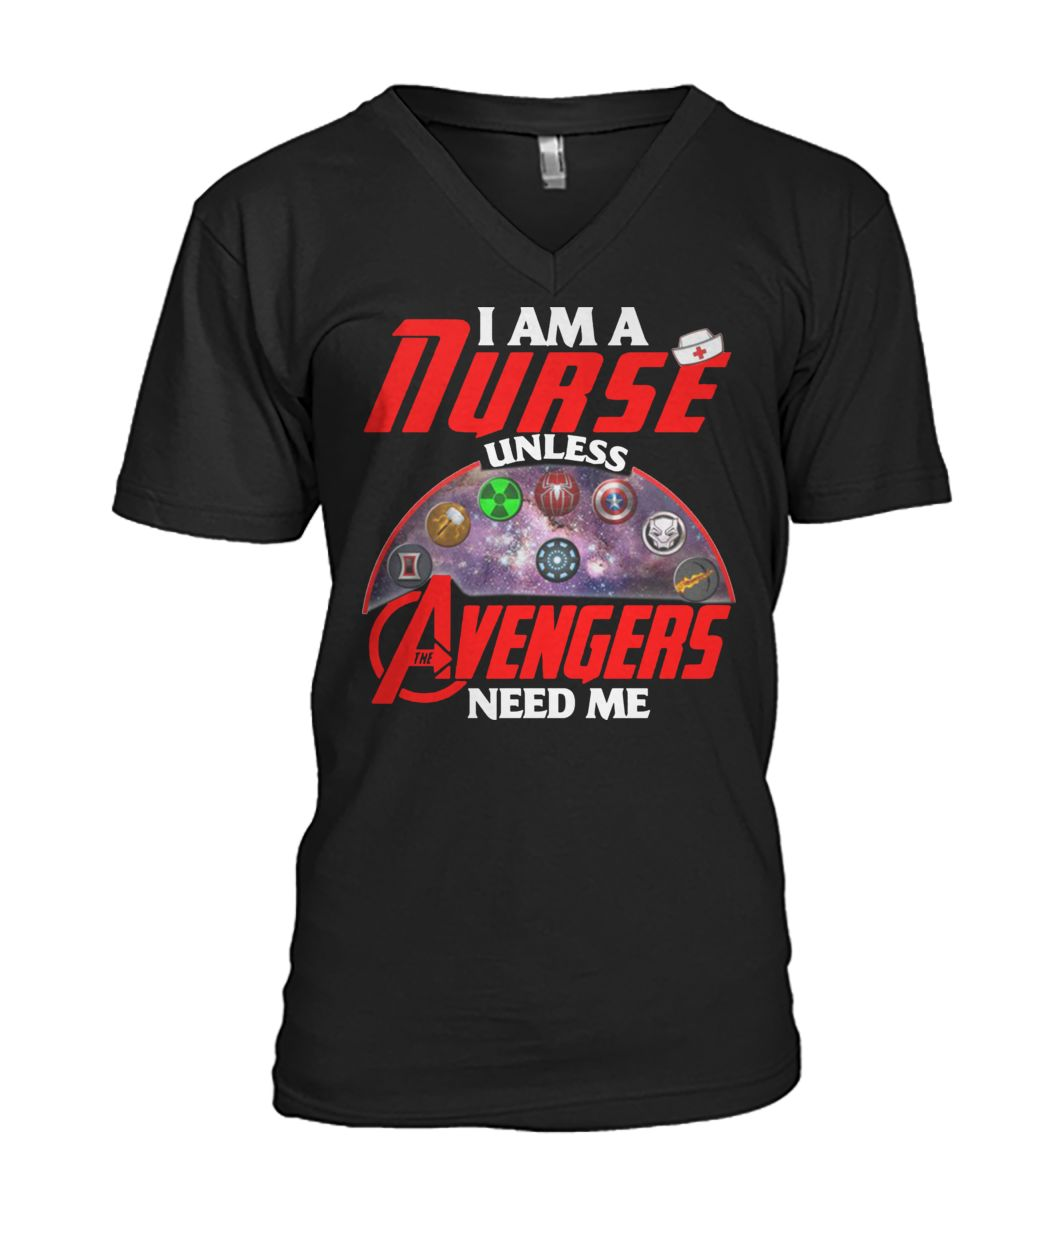 I am a nurse unless avengers need me mens v-neck